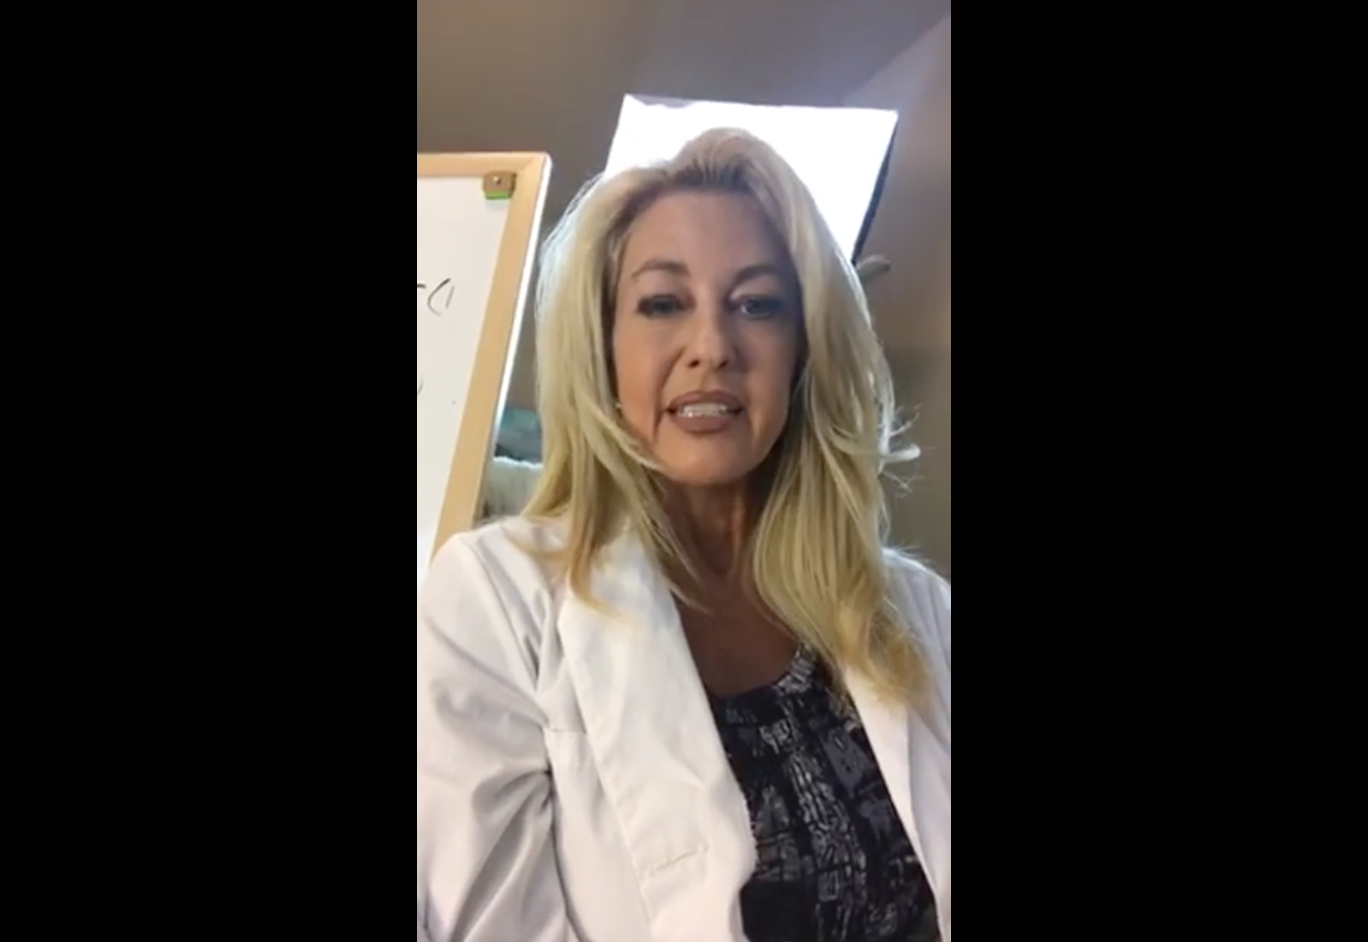 Medical Cannabis Q&A with Dr. Tammy Post